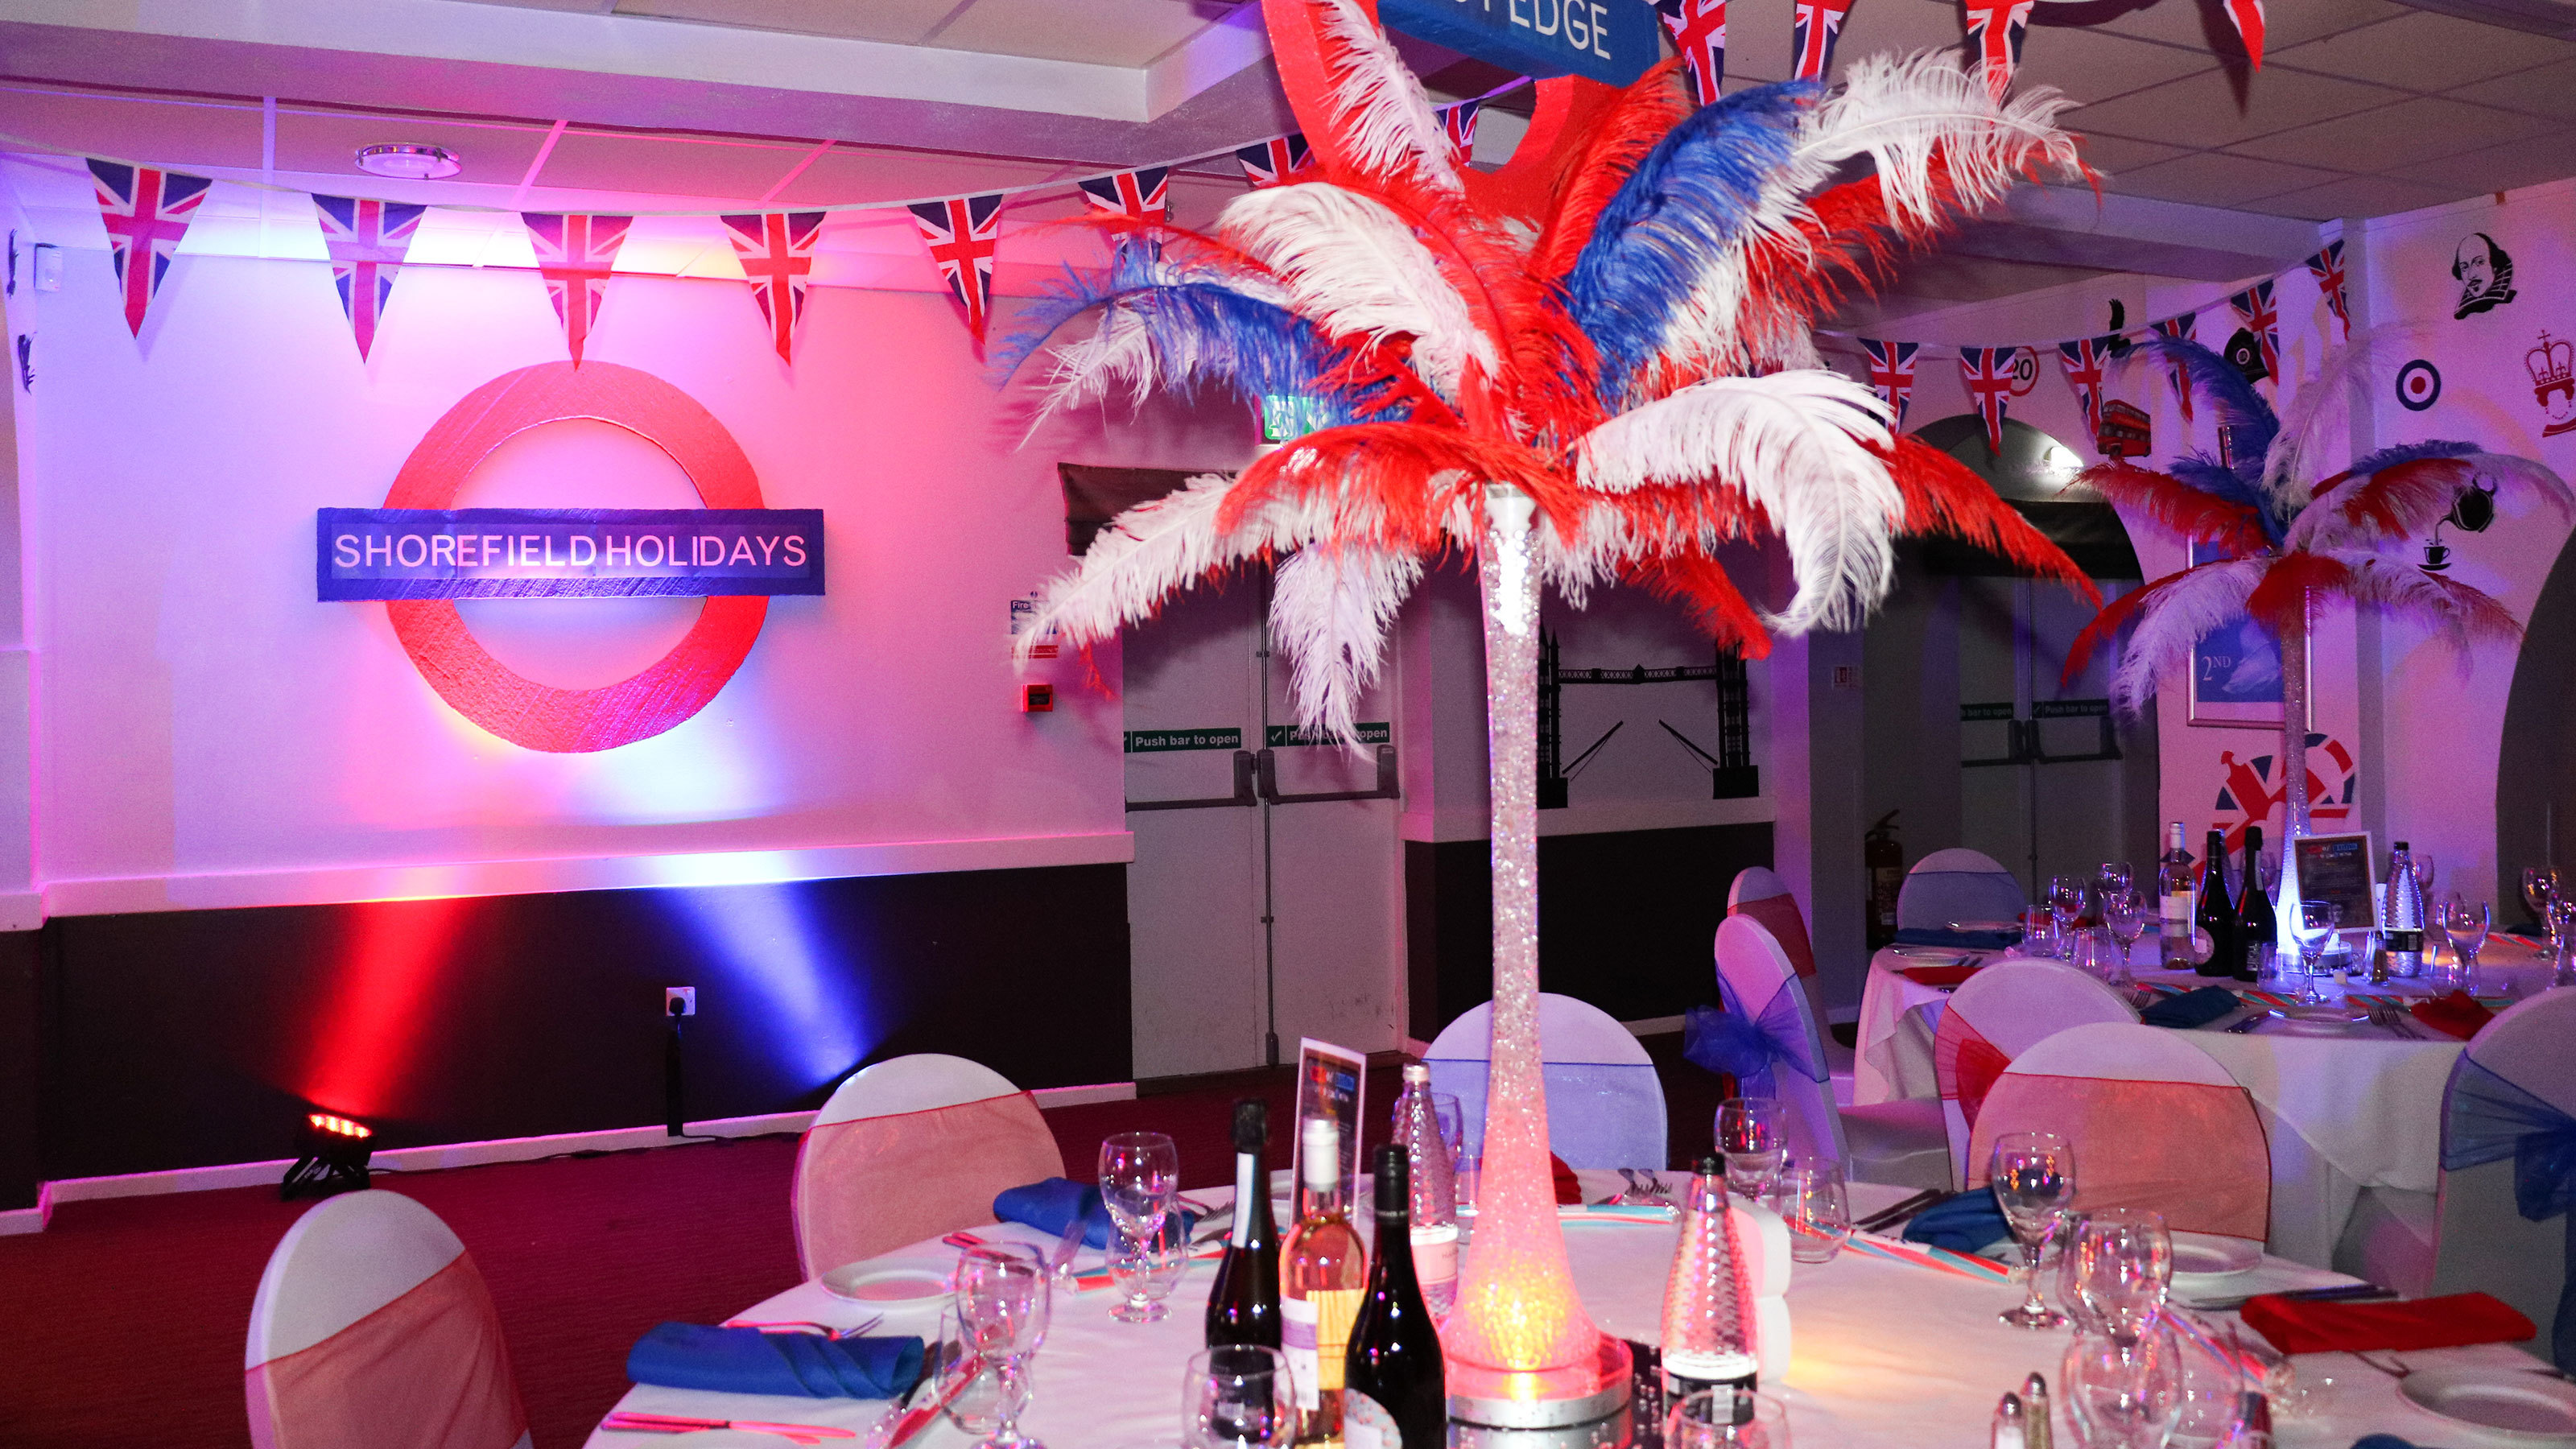 Best-of-British-themed-table-decorations-and-event